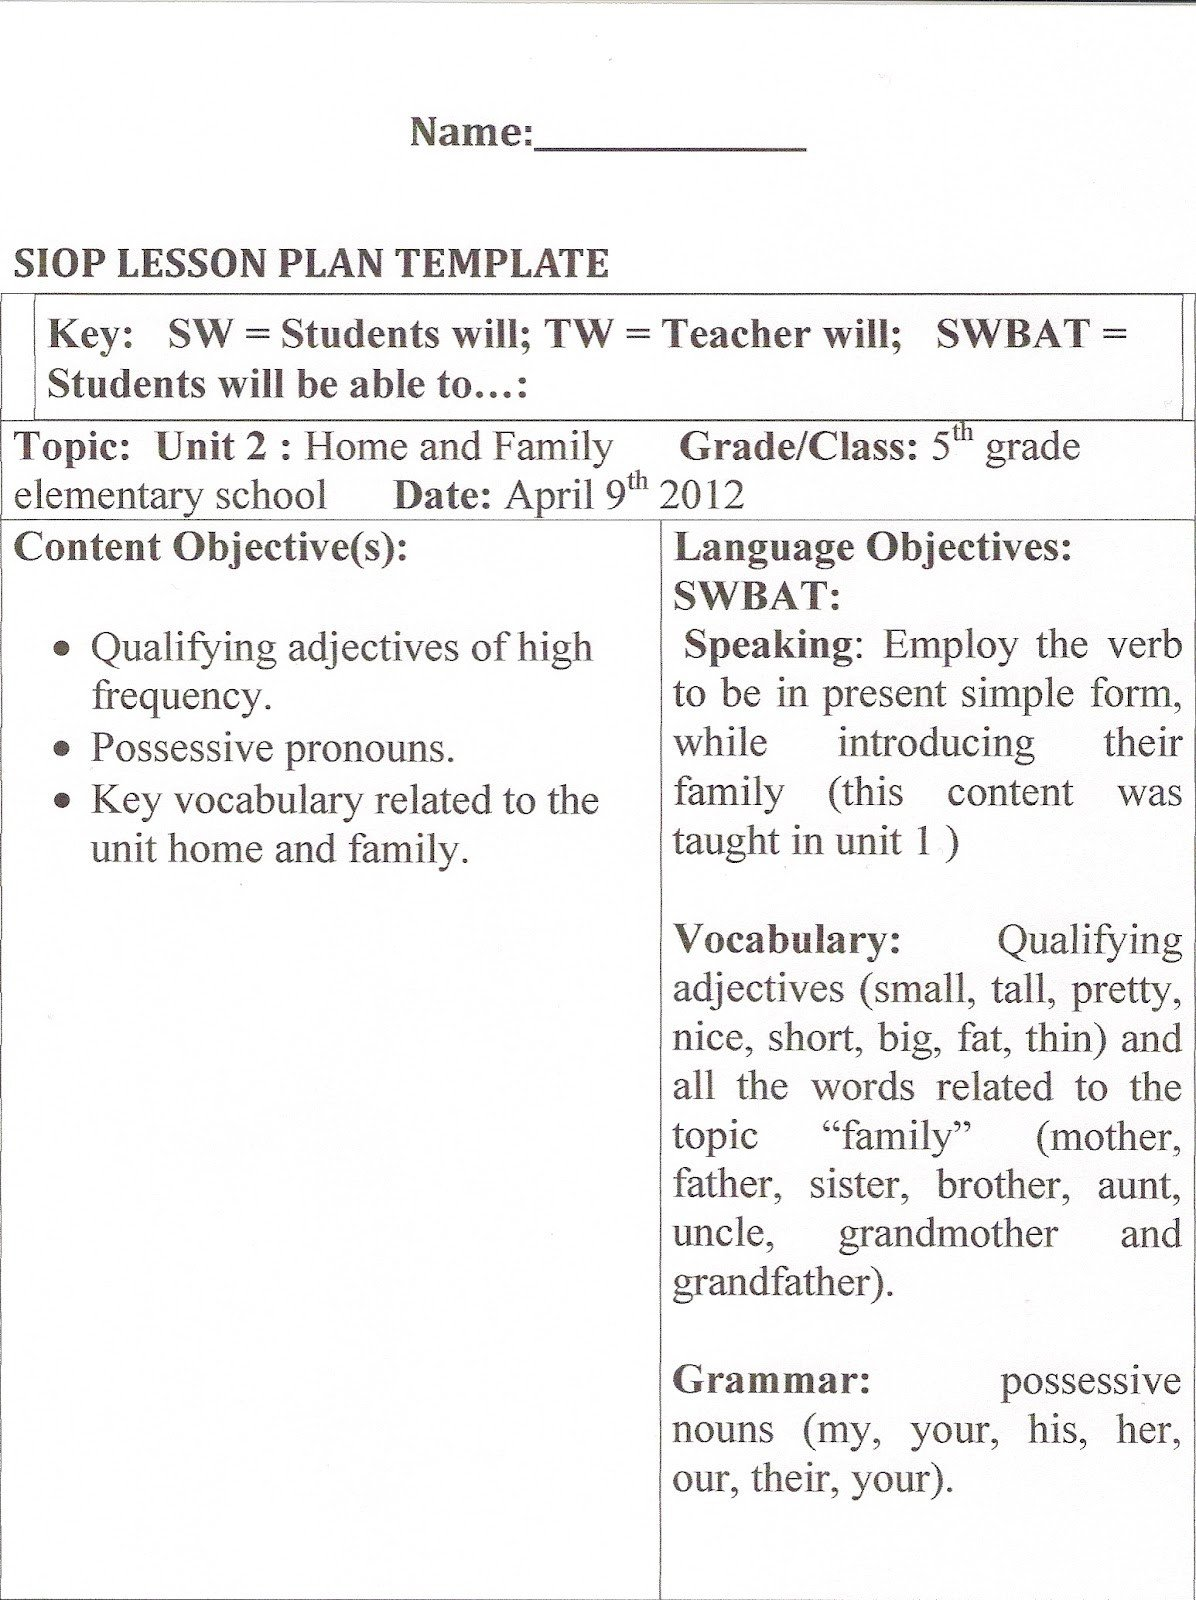 Siop Lesson Plan Template Learning About Methodology Hands On Activities